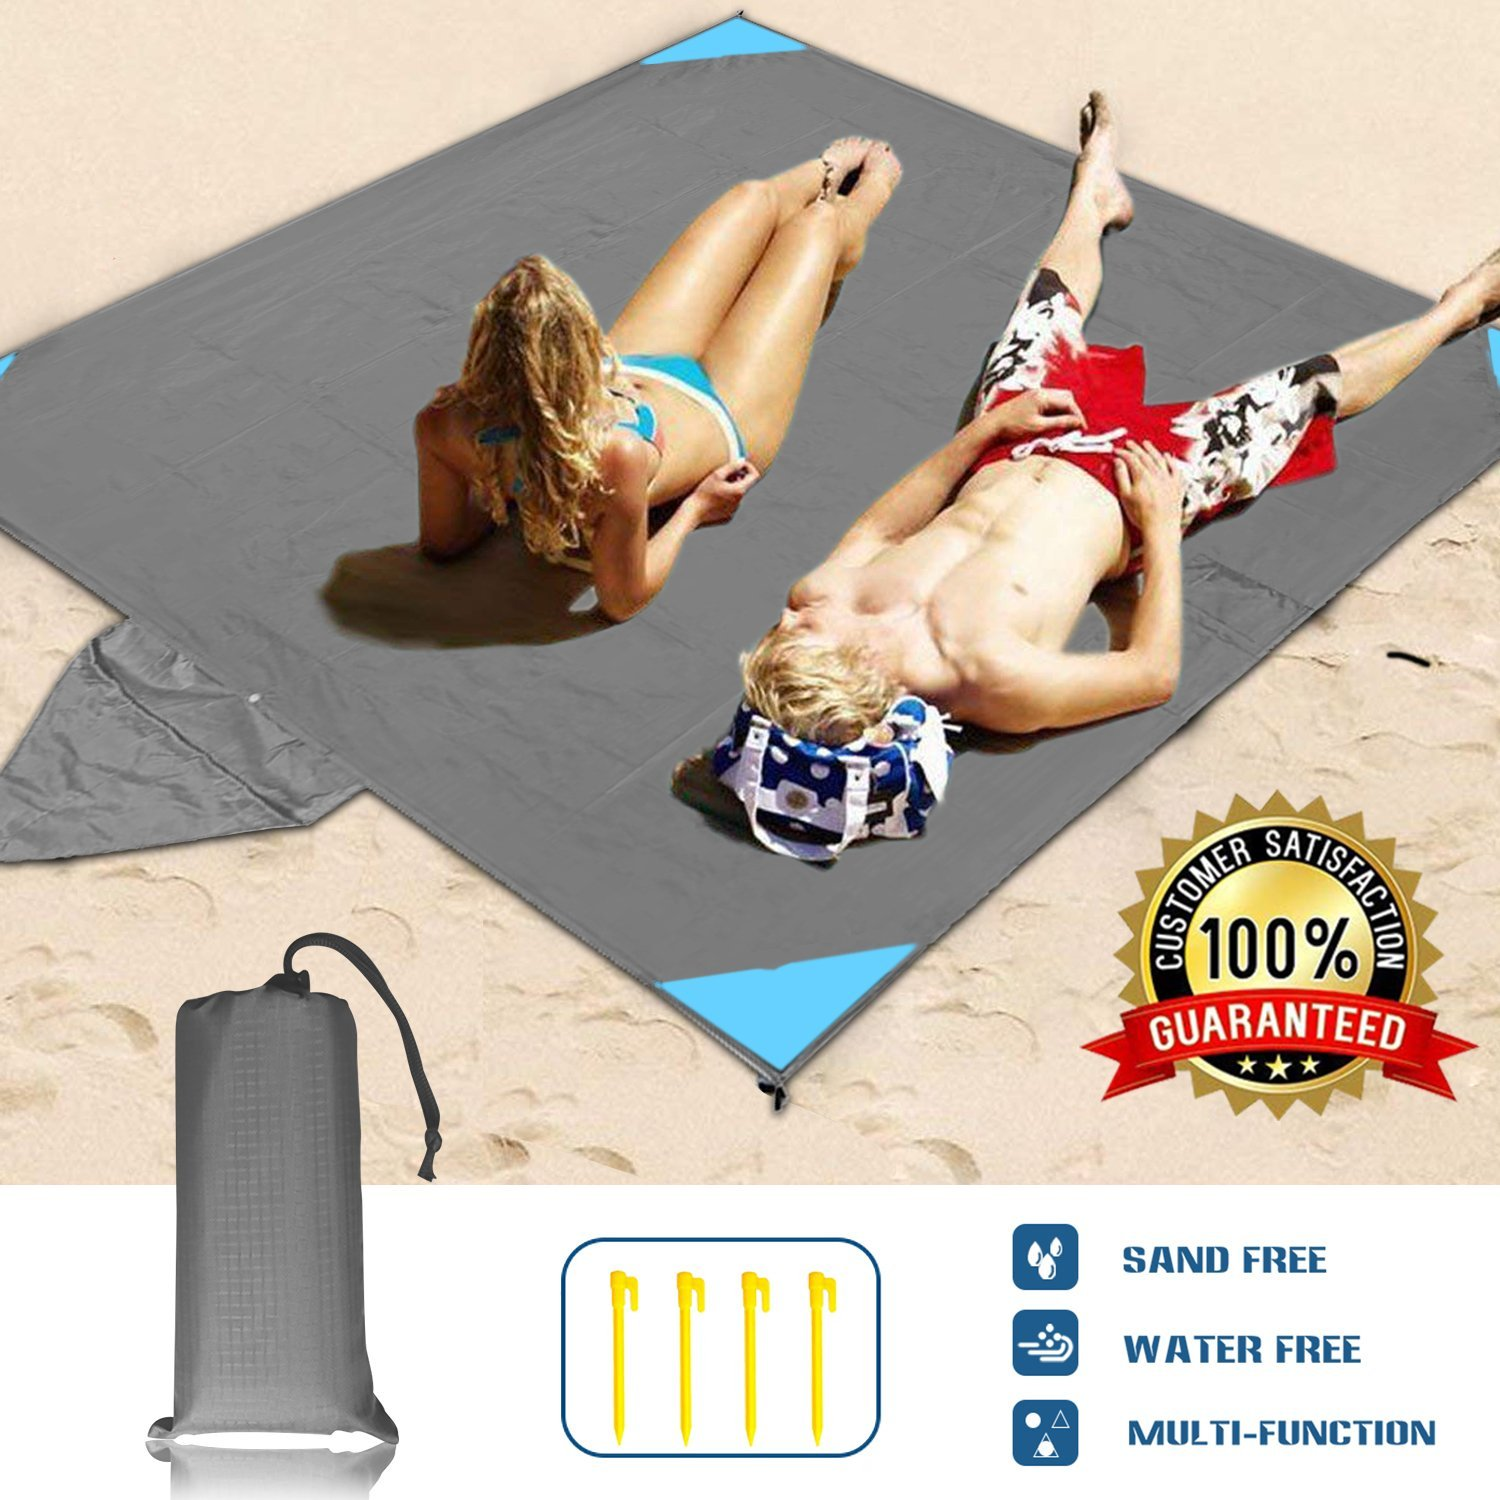 WELTEAYO Beach Blanket, Portable Lightweight Waterproof Sandproof Pocket Picnic Blanket - 140cm x 209cm Large Picnic Mat and for Outdoor Travel Camping Hiking Activities